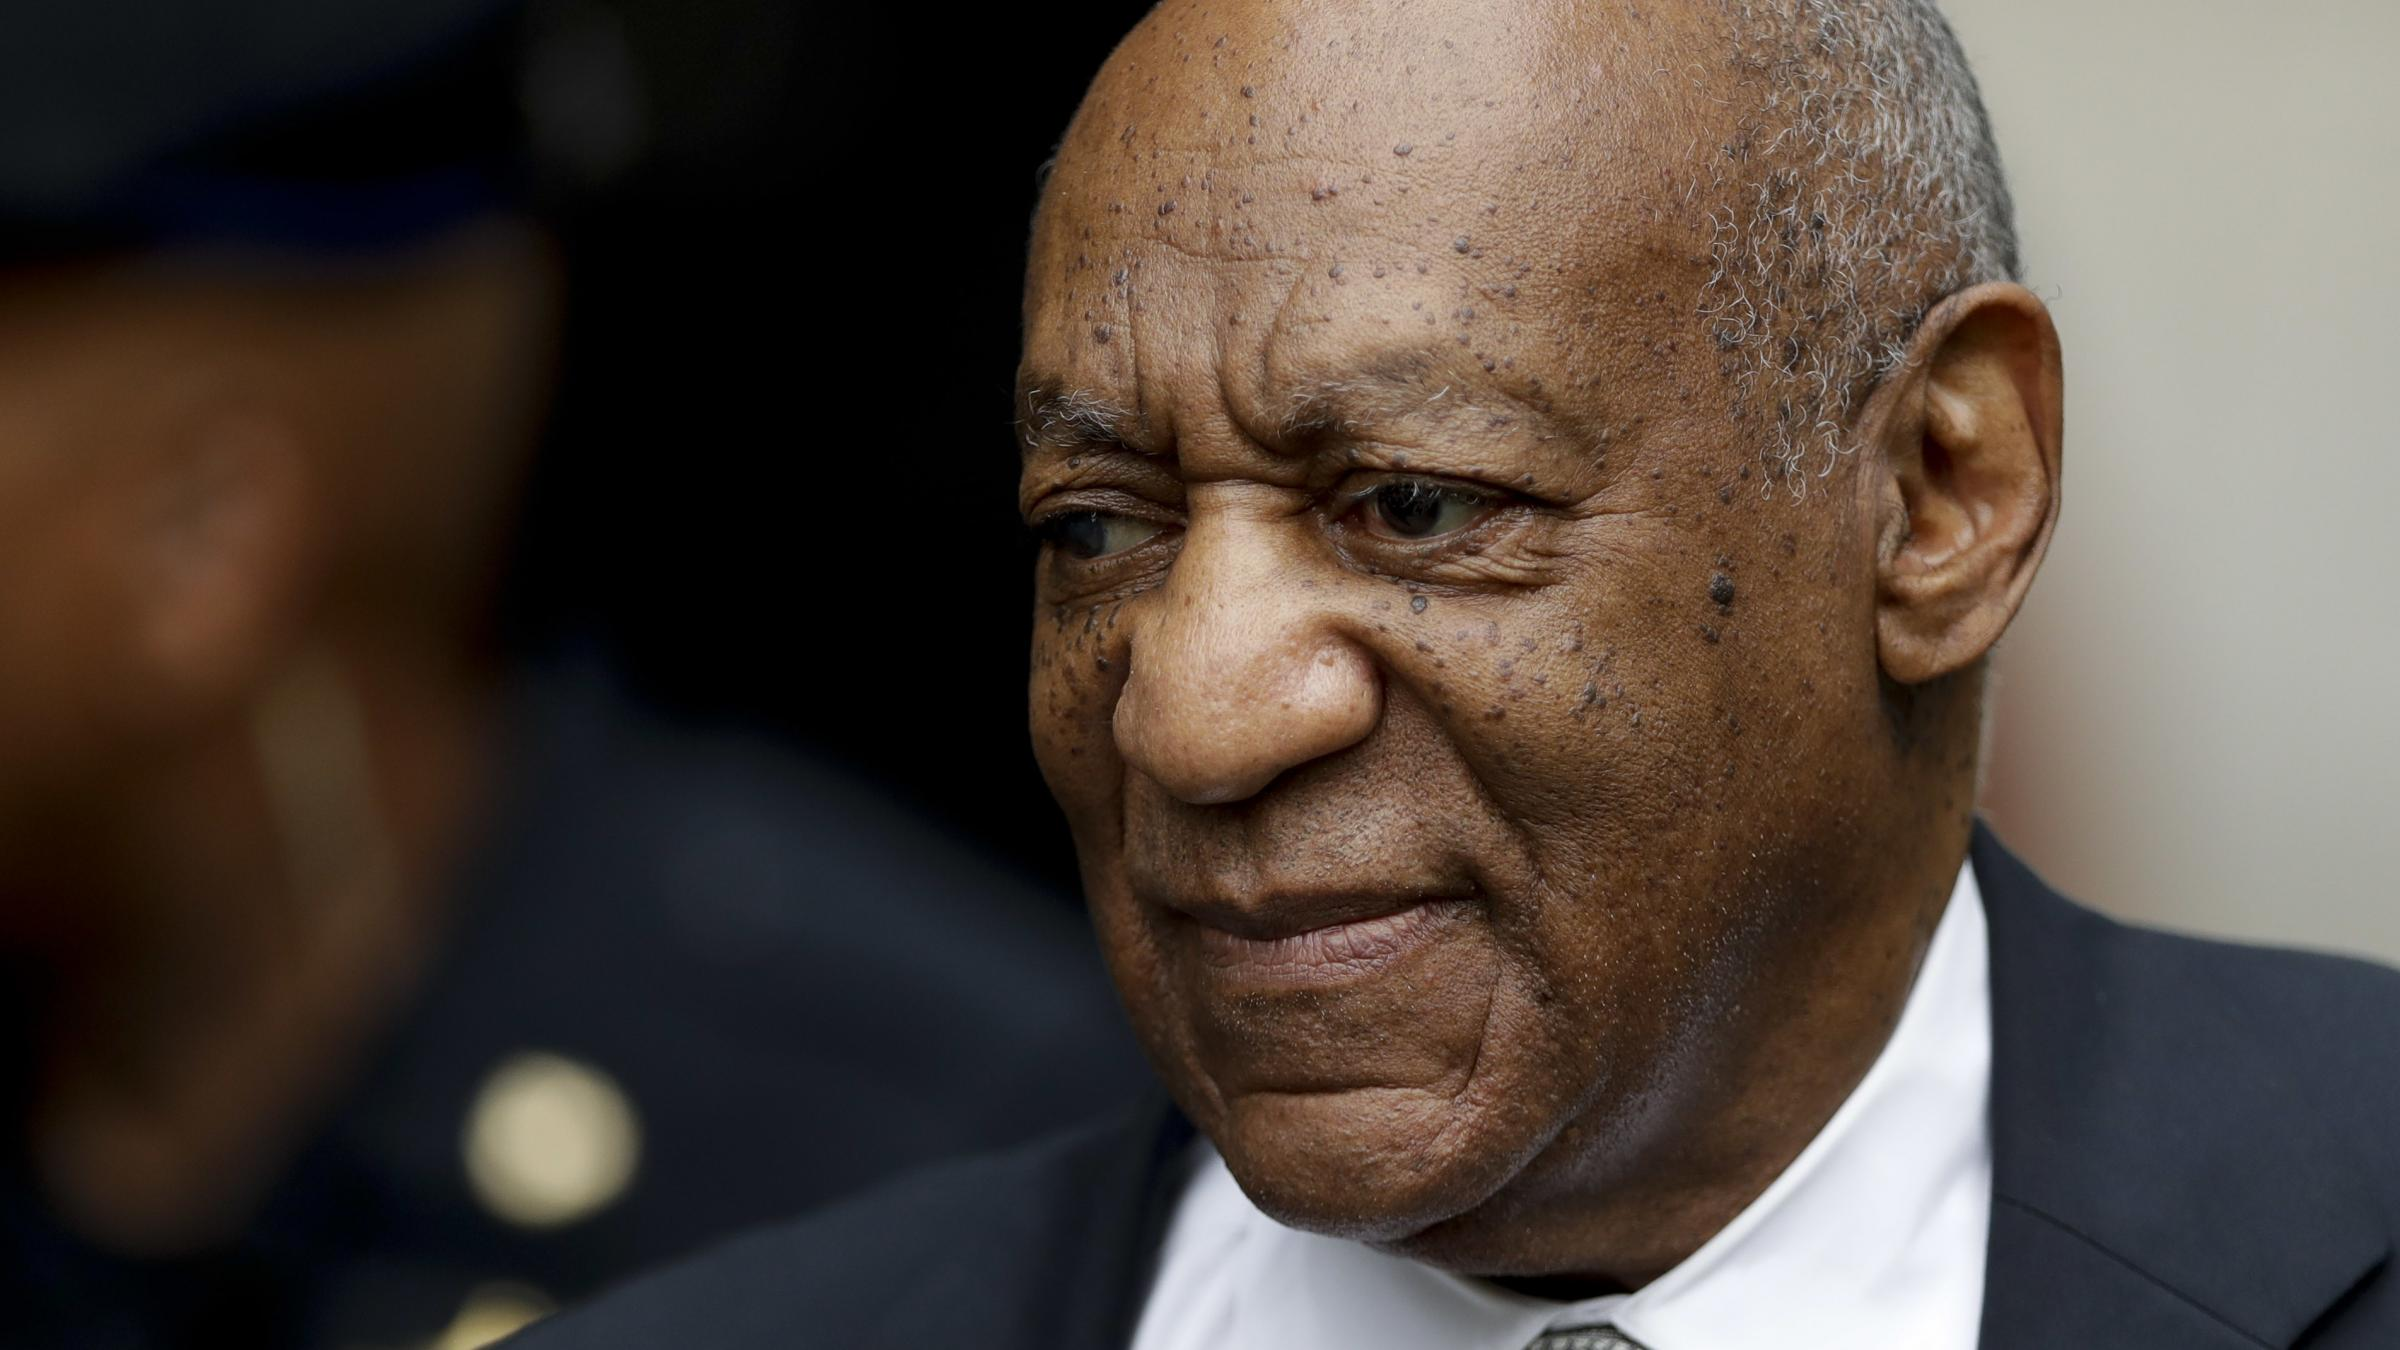 Bill Cosby: what will his legacy be now?